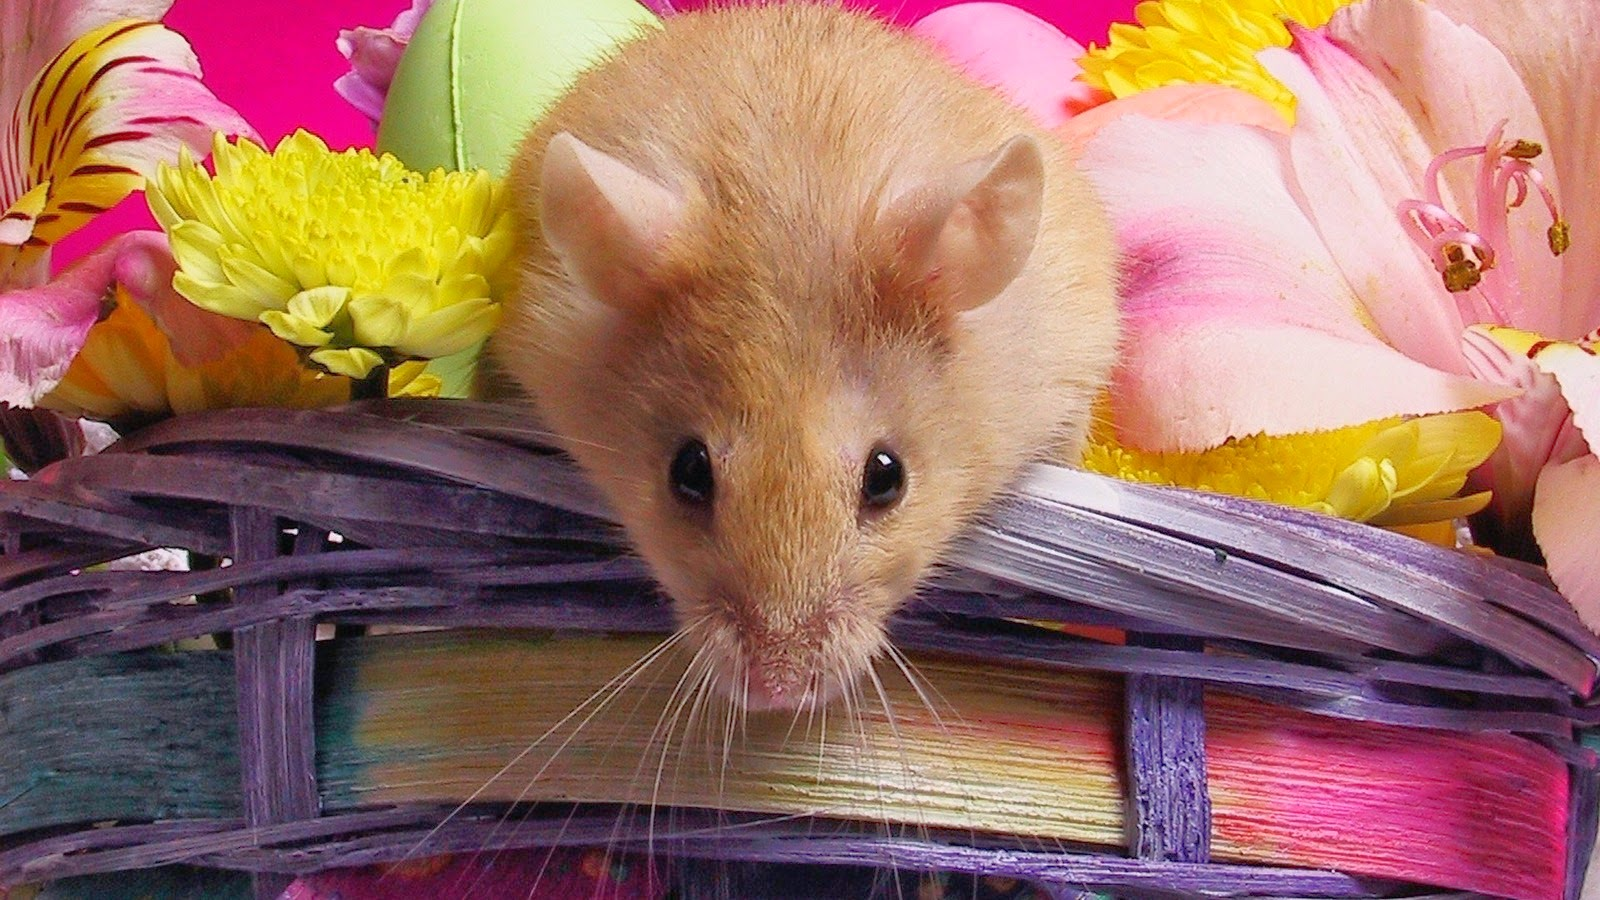 Cute Dreamcatcher Wallpaper Hamster Wallpapers Hd Beautiful Wallpapers Collection 2014